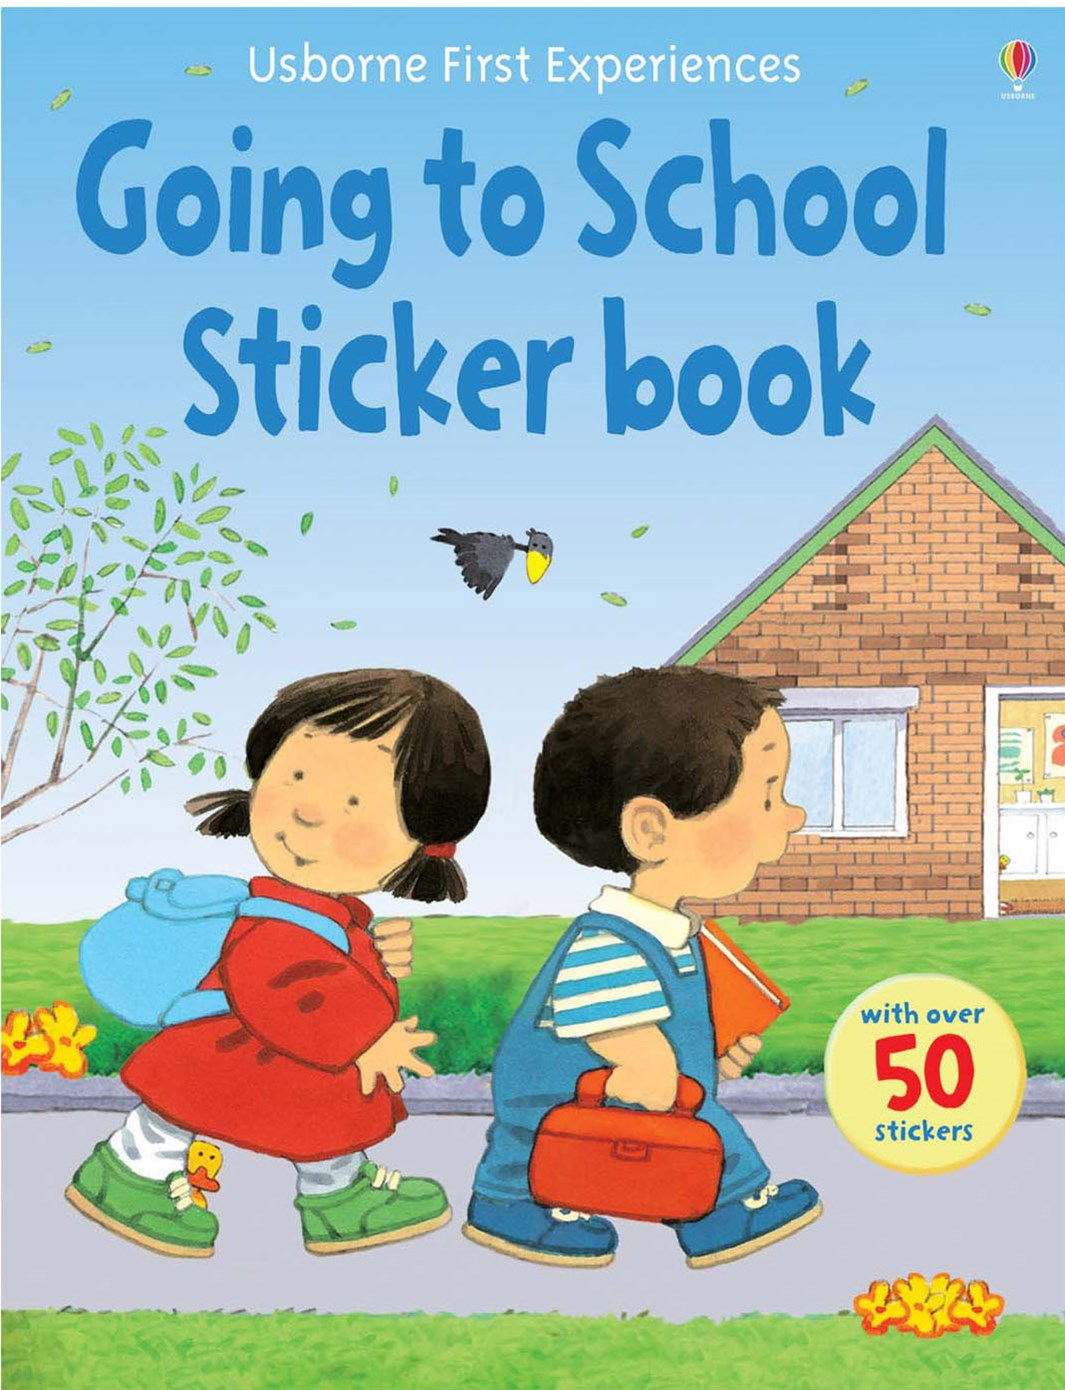 Usborne First Experiences Going to School Sticker Book